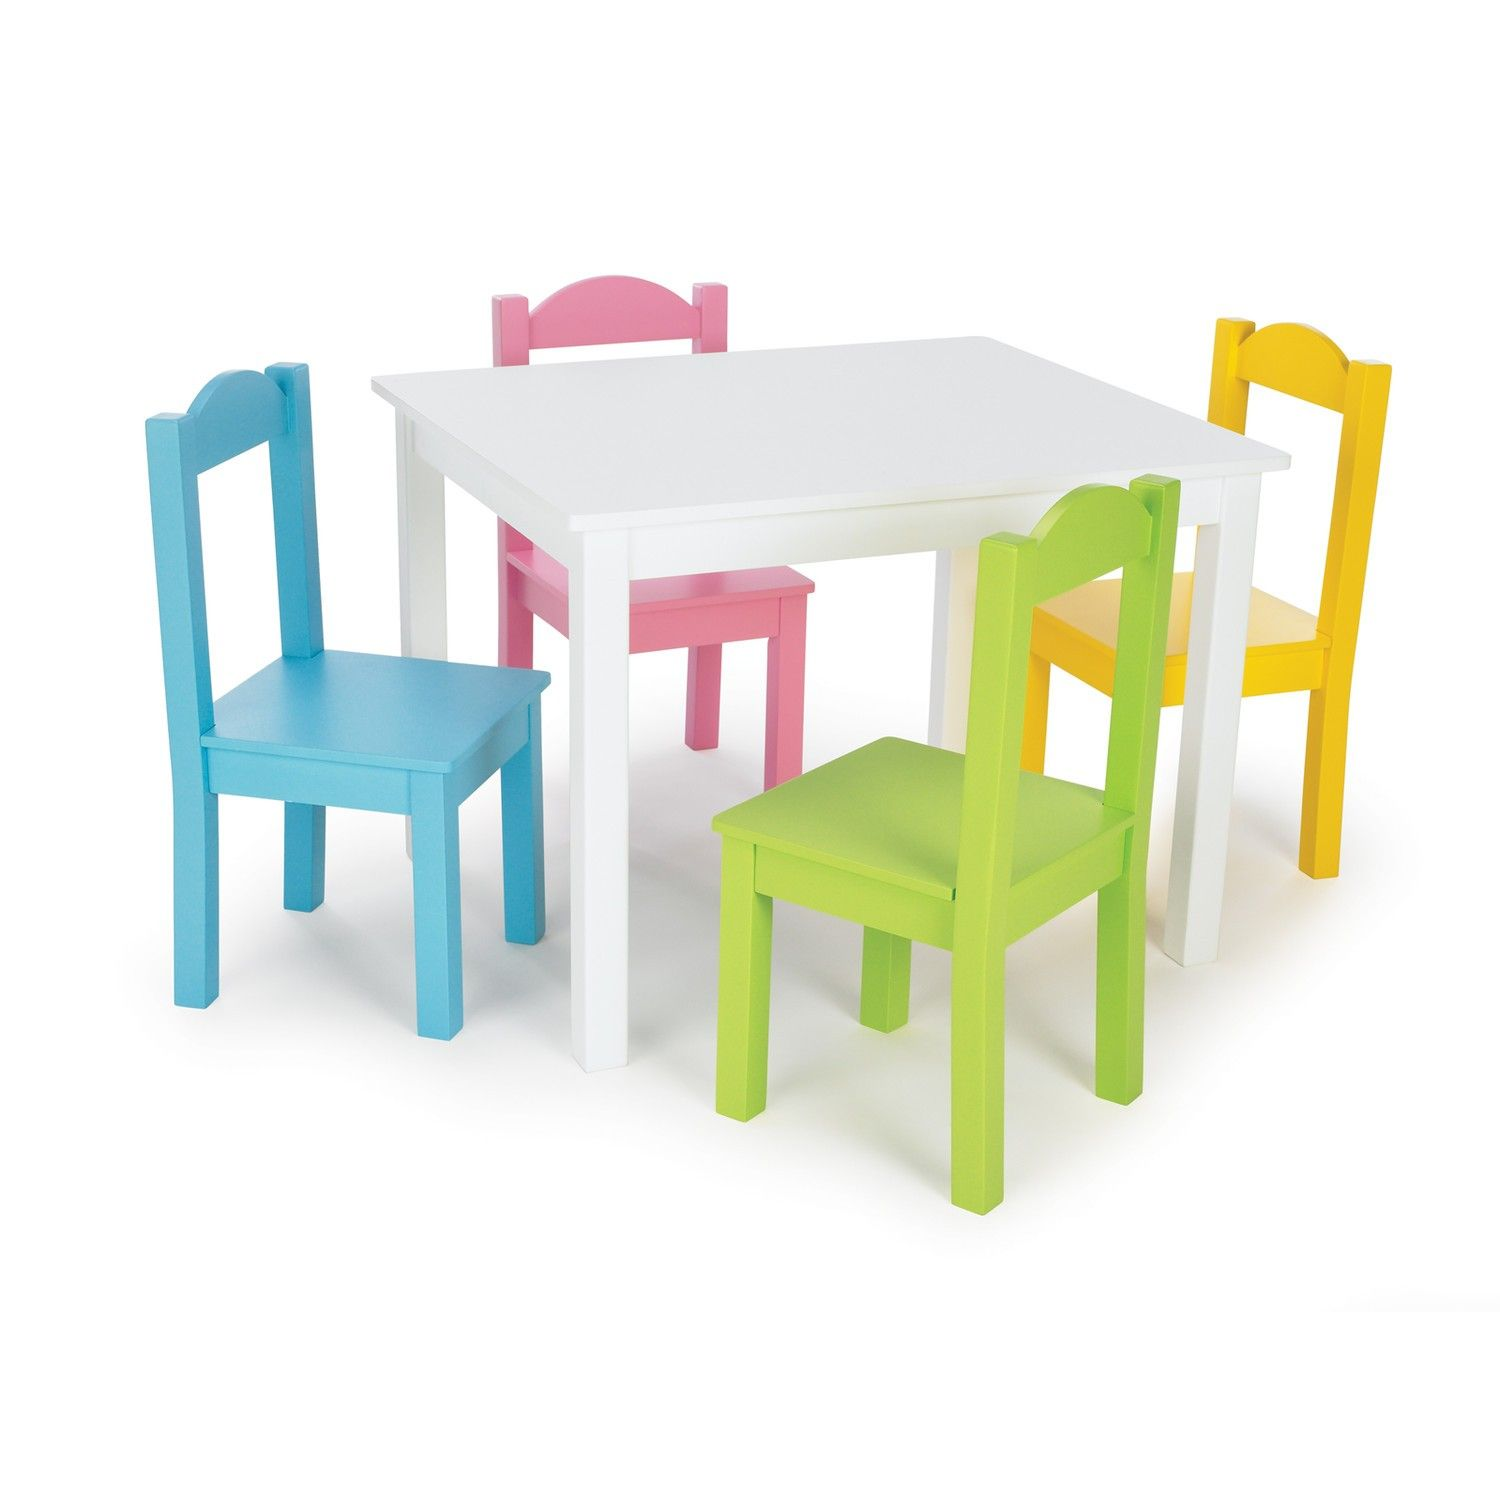 Furniture Kids Room Rectangle White Painted Wooden Table for Four ...